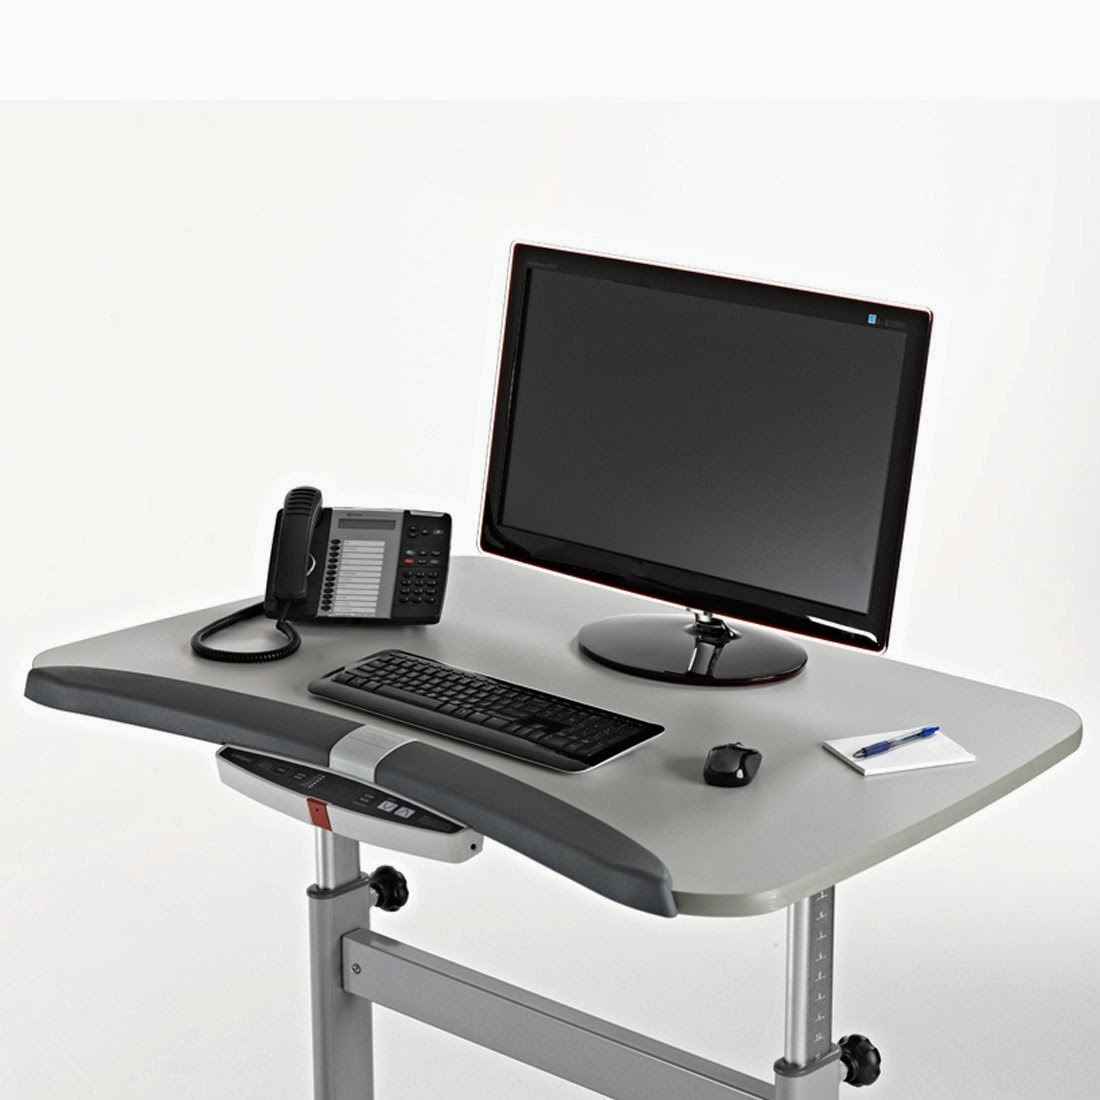 treadmill gray a folding desk lifespan call bluetooth with